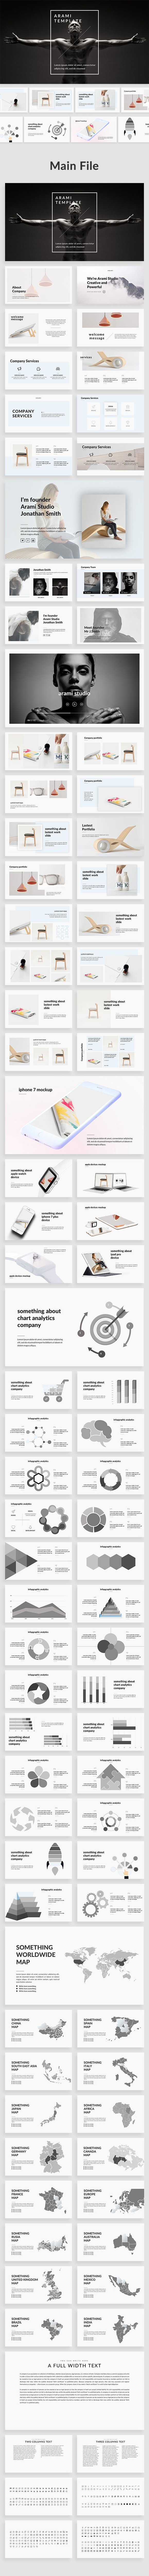 Arami  Minimal — Powerpoint PPT #fancy #art • Download ➝ https://graphicriver.net/item/arami-minimal-powerpoint-template/19647997?ref=pxcr